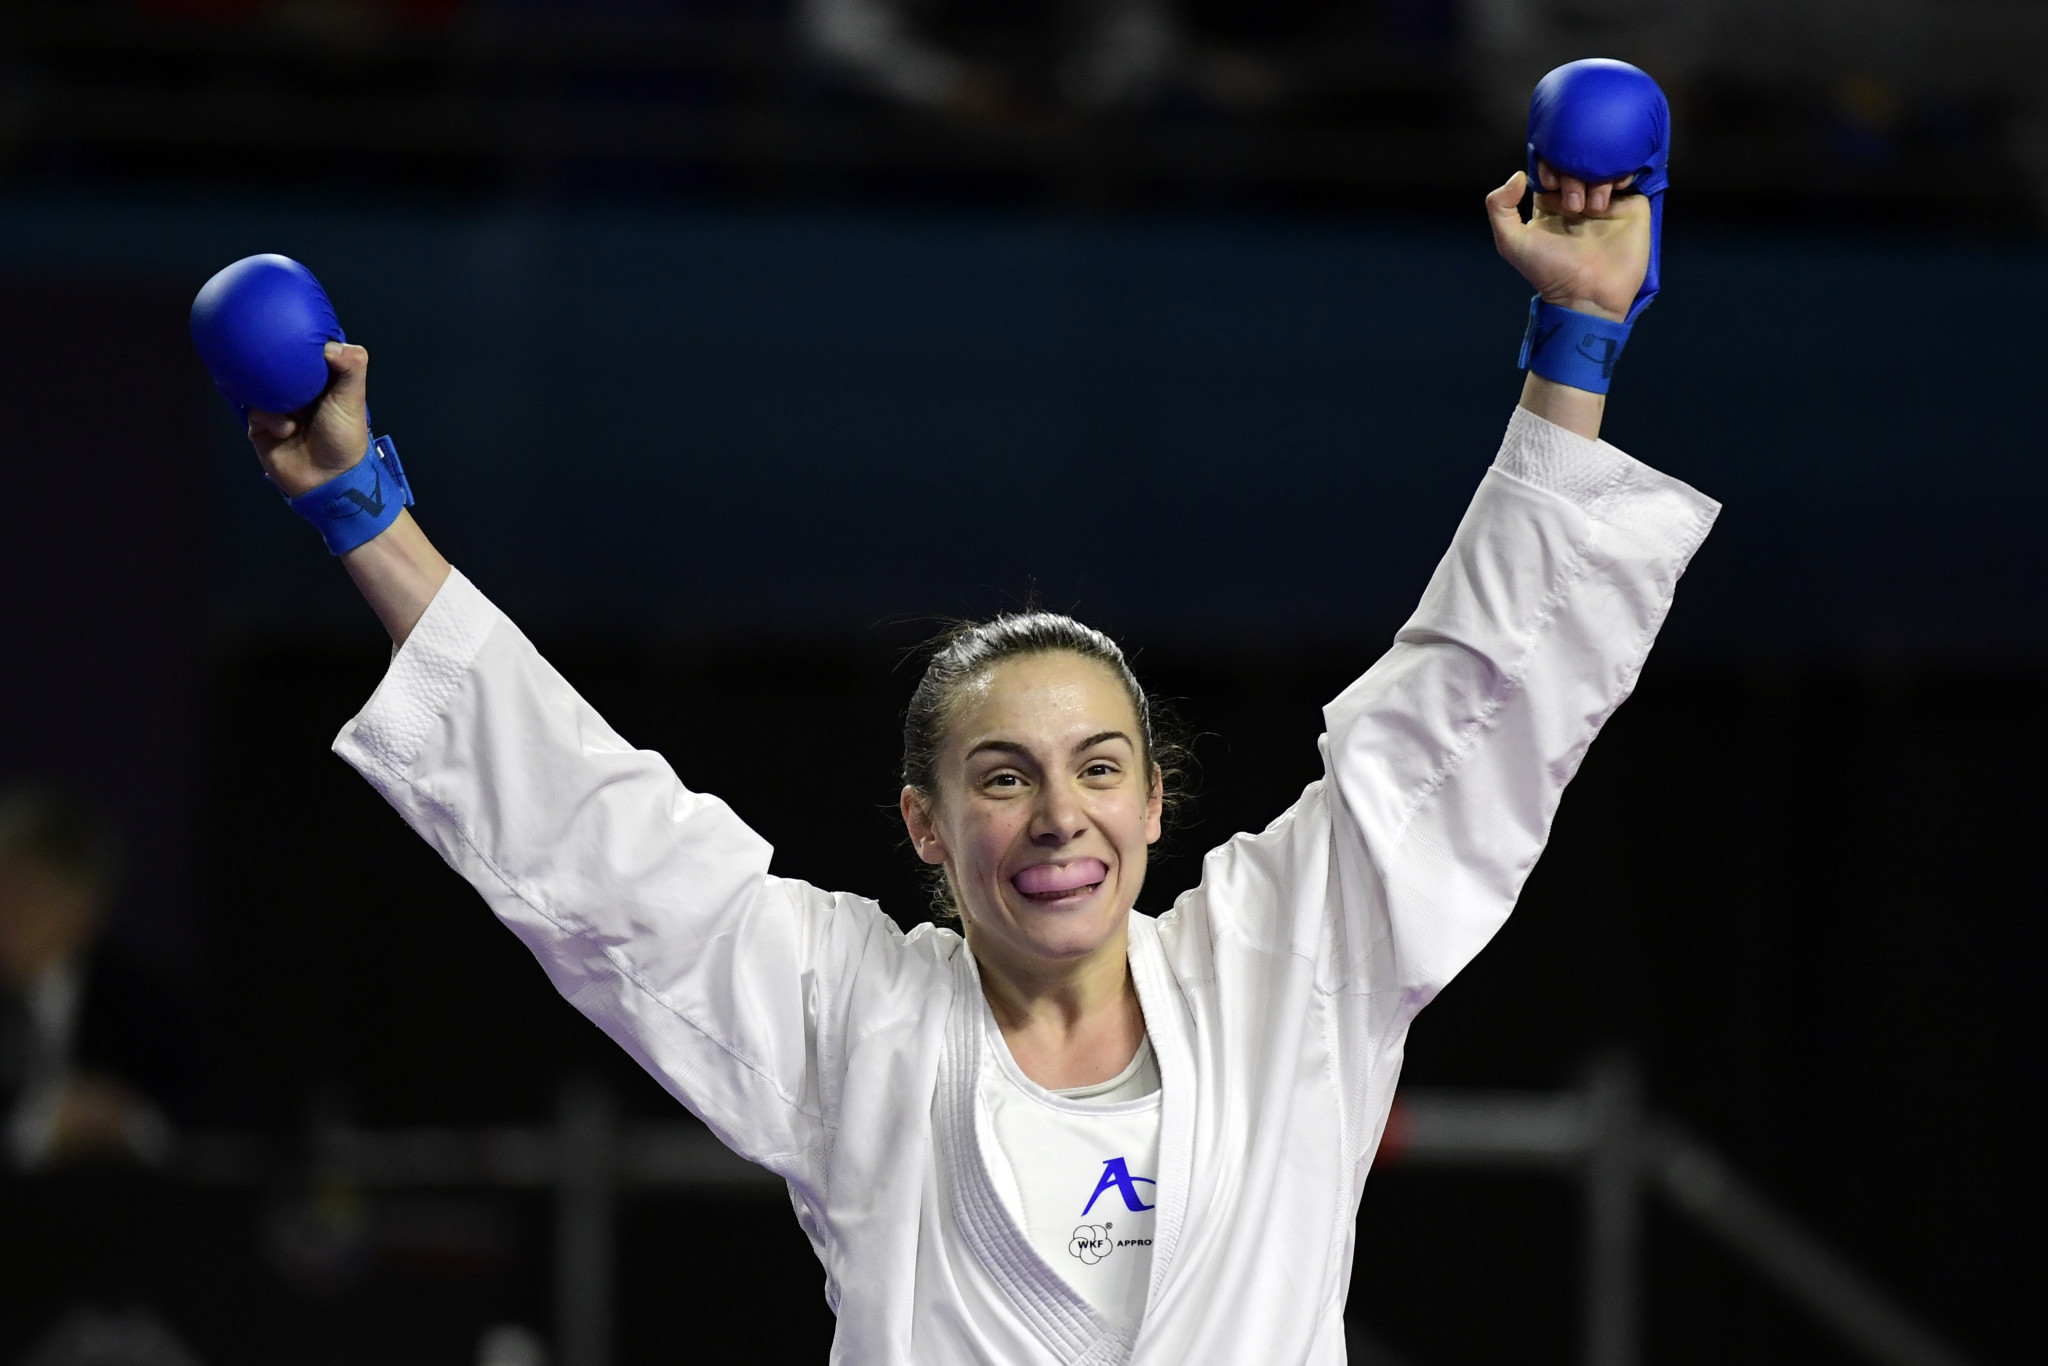 More final line-ups confirmed on day two of the Karate 1-Premier League in Lisbon